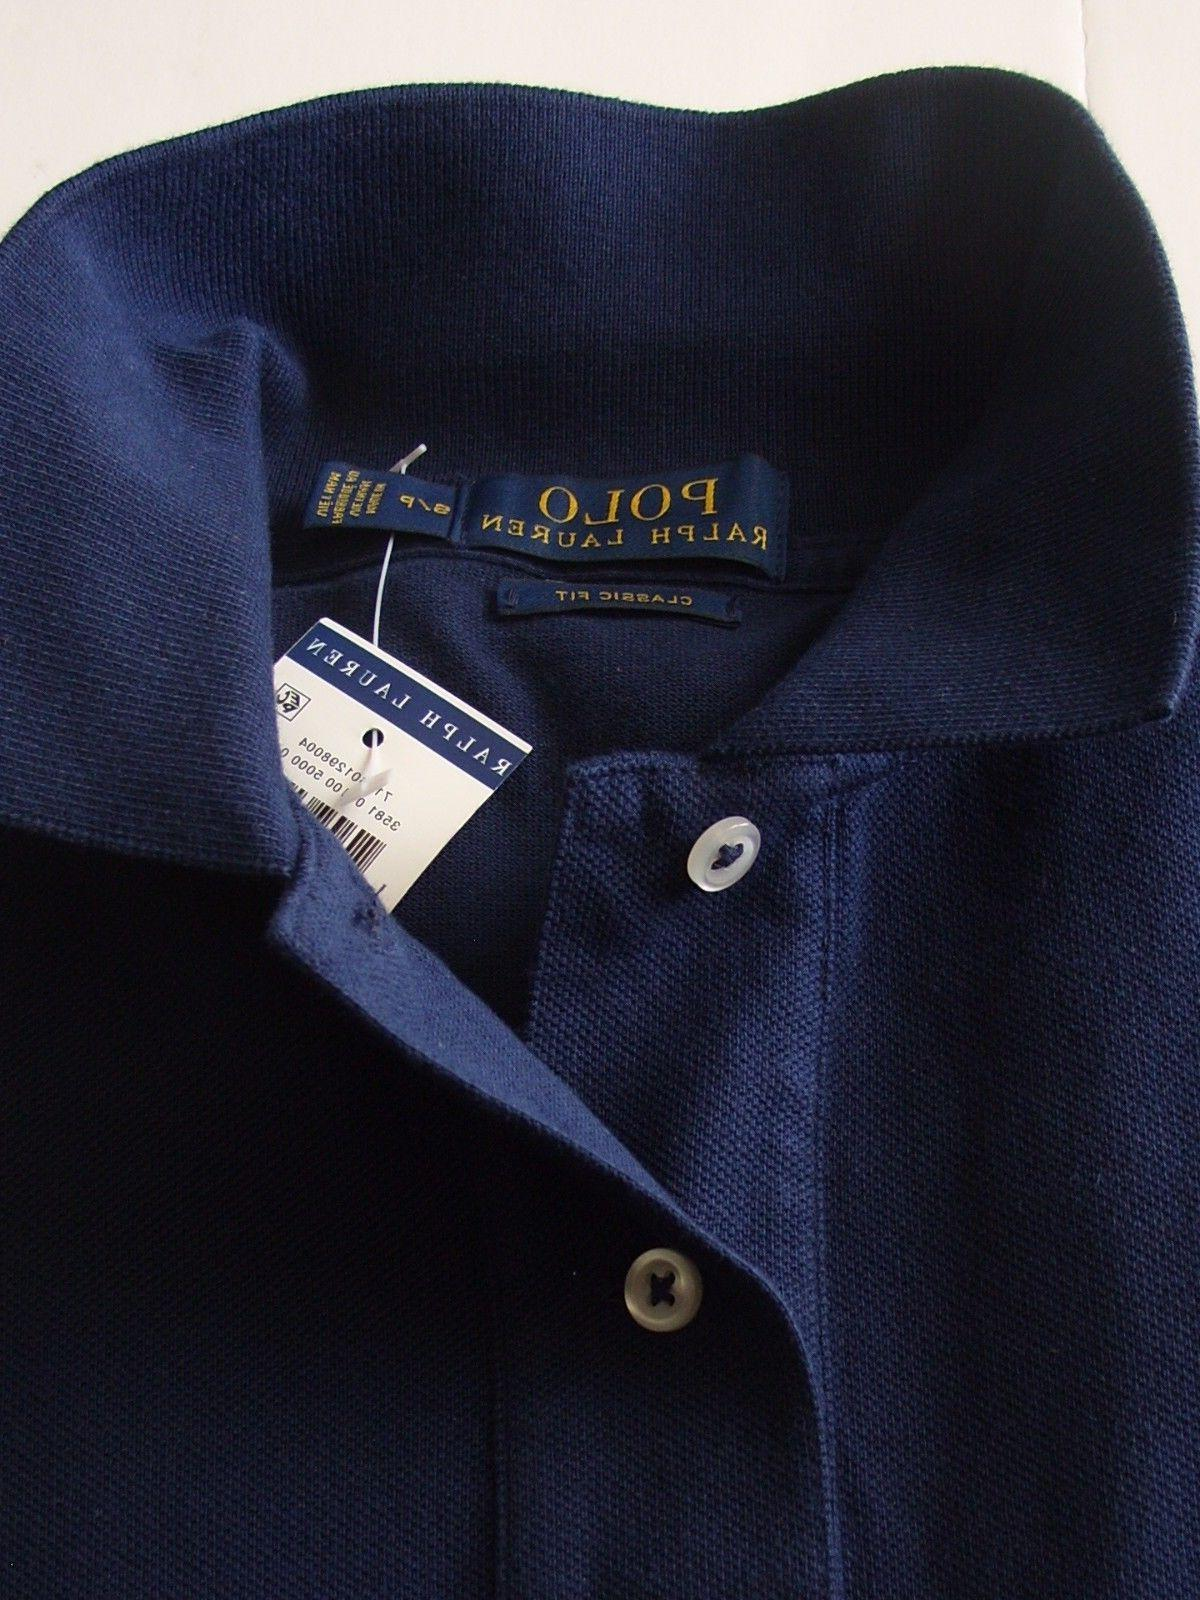 Men Polo Ralph Lauren Mesh Shirt Size XXL -